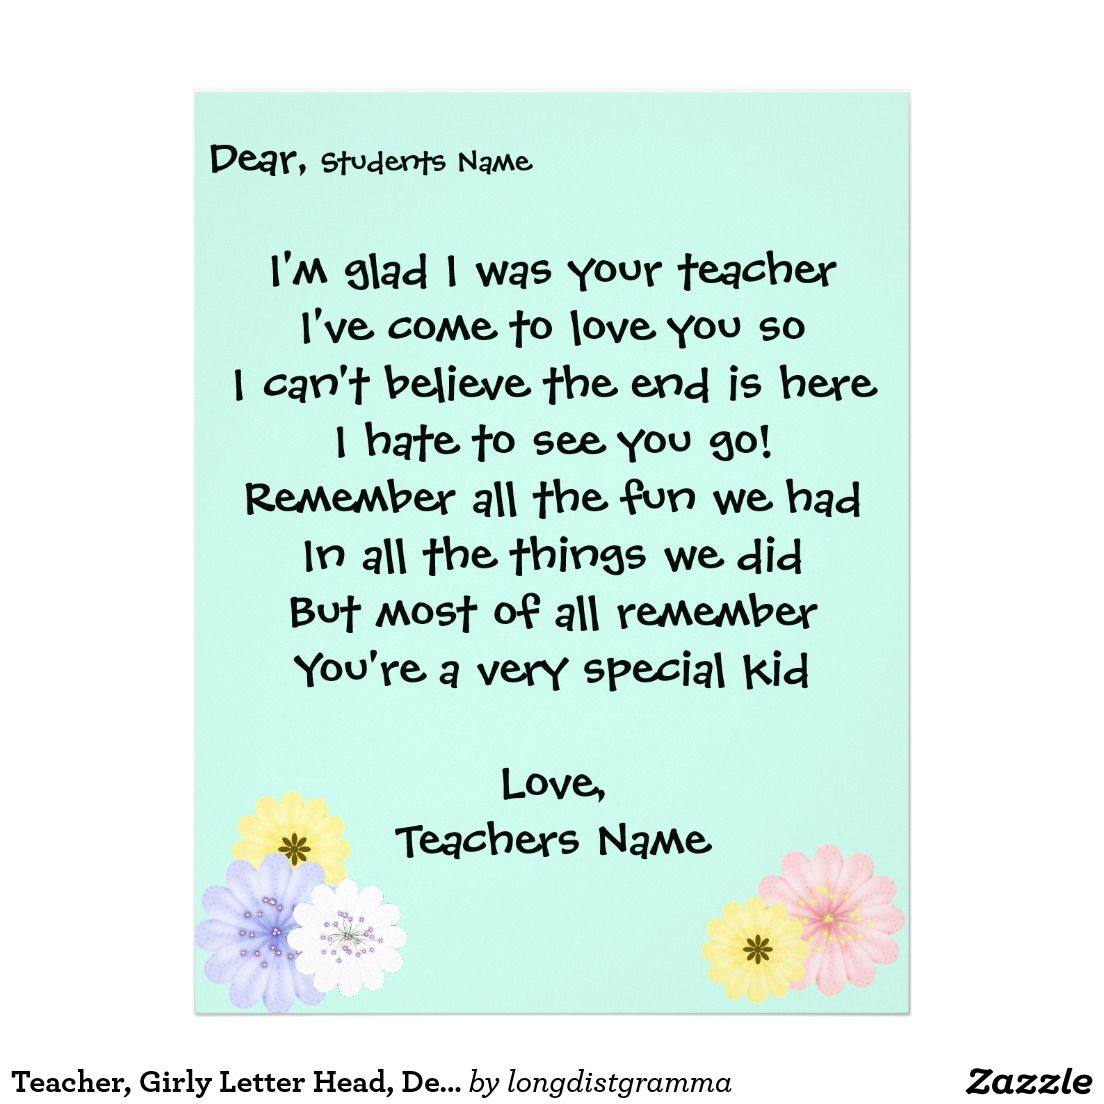 Teacher Girly Letter Head Dear Student Letterhead  In The